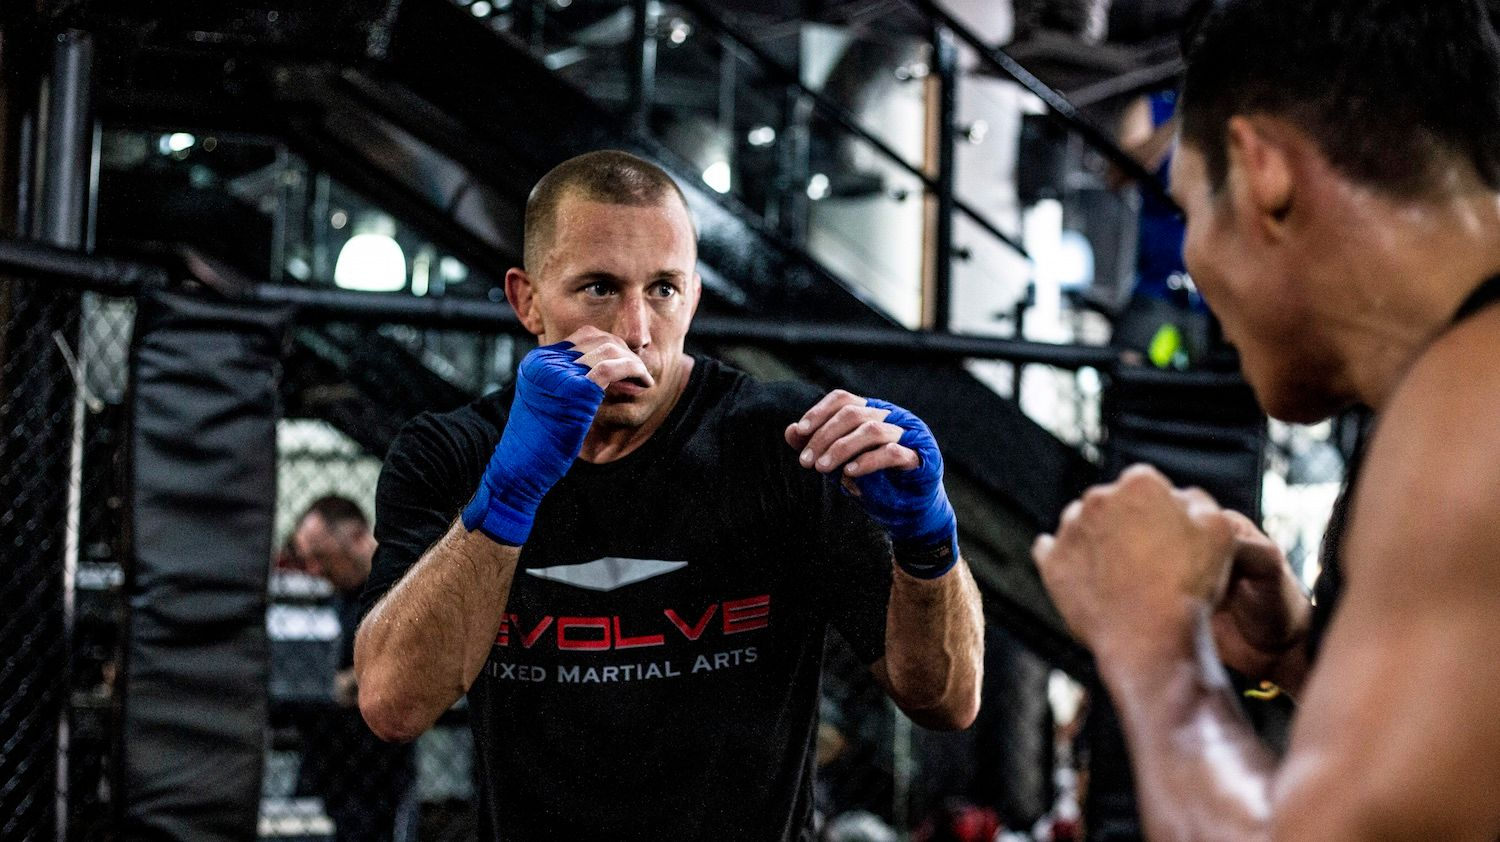 Georges St. Pierre wearing blue hand wraps at Evolve MMA